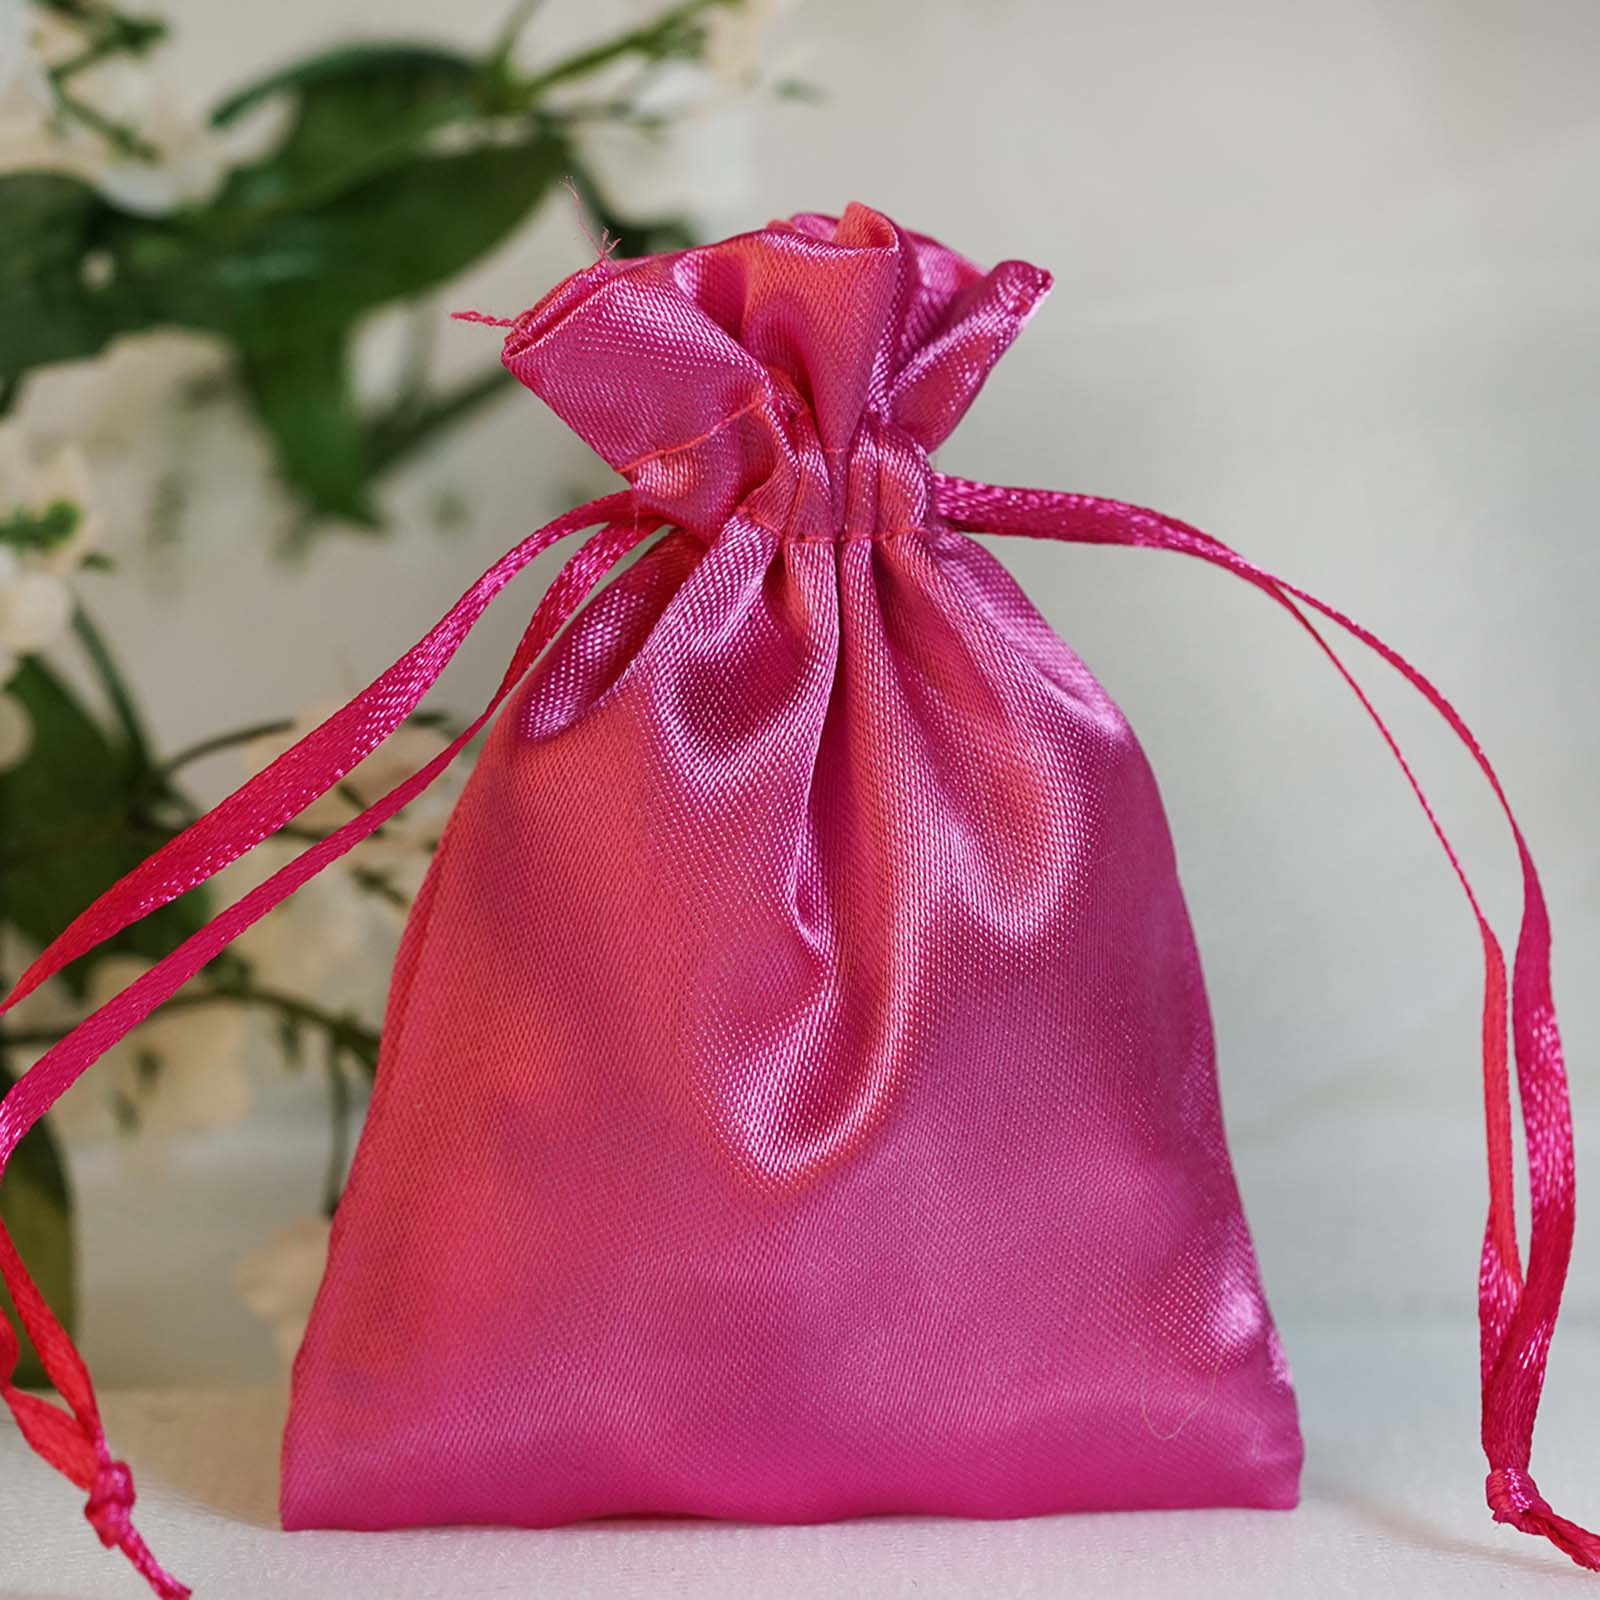 """Wedding Gift Bags Wholesale: 3x3.5"""" SATIN BAGS With Pull String Wedding Party Gift"""